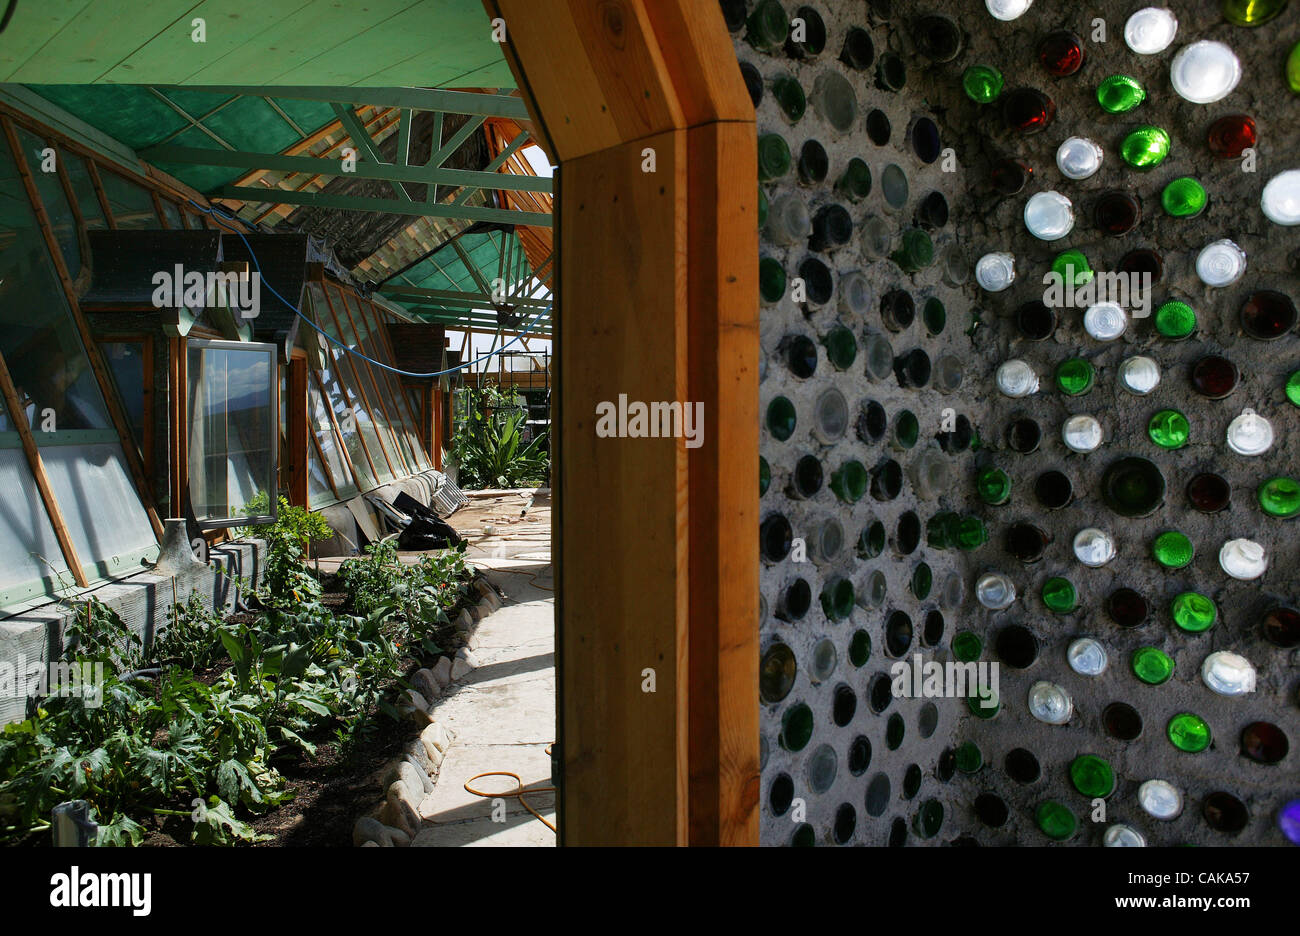 ... An Earthship, A House Made Of Recycled Tires, Bottles, And Cans In The